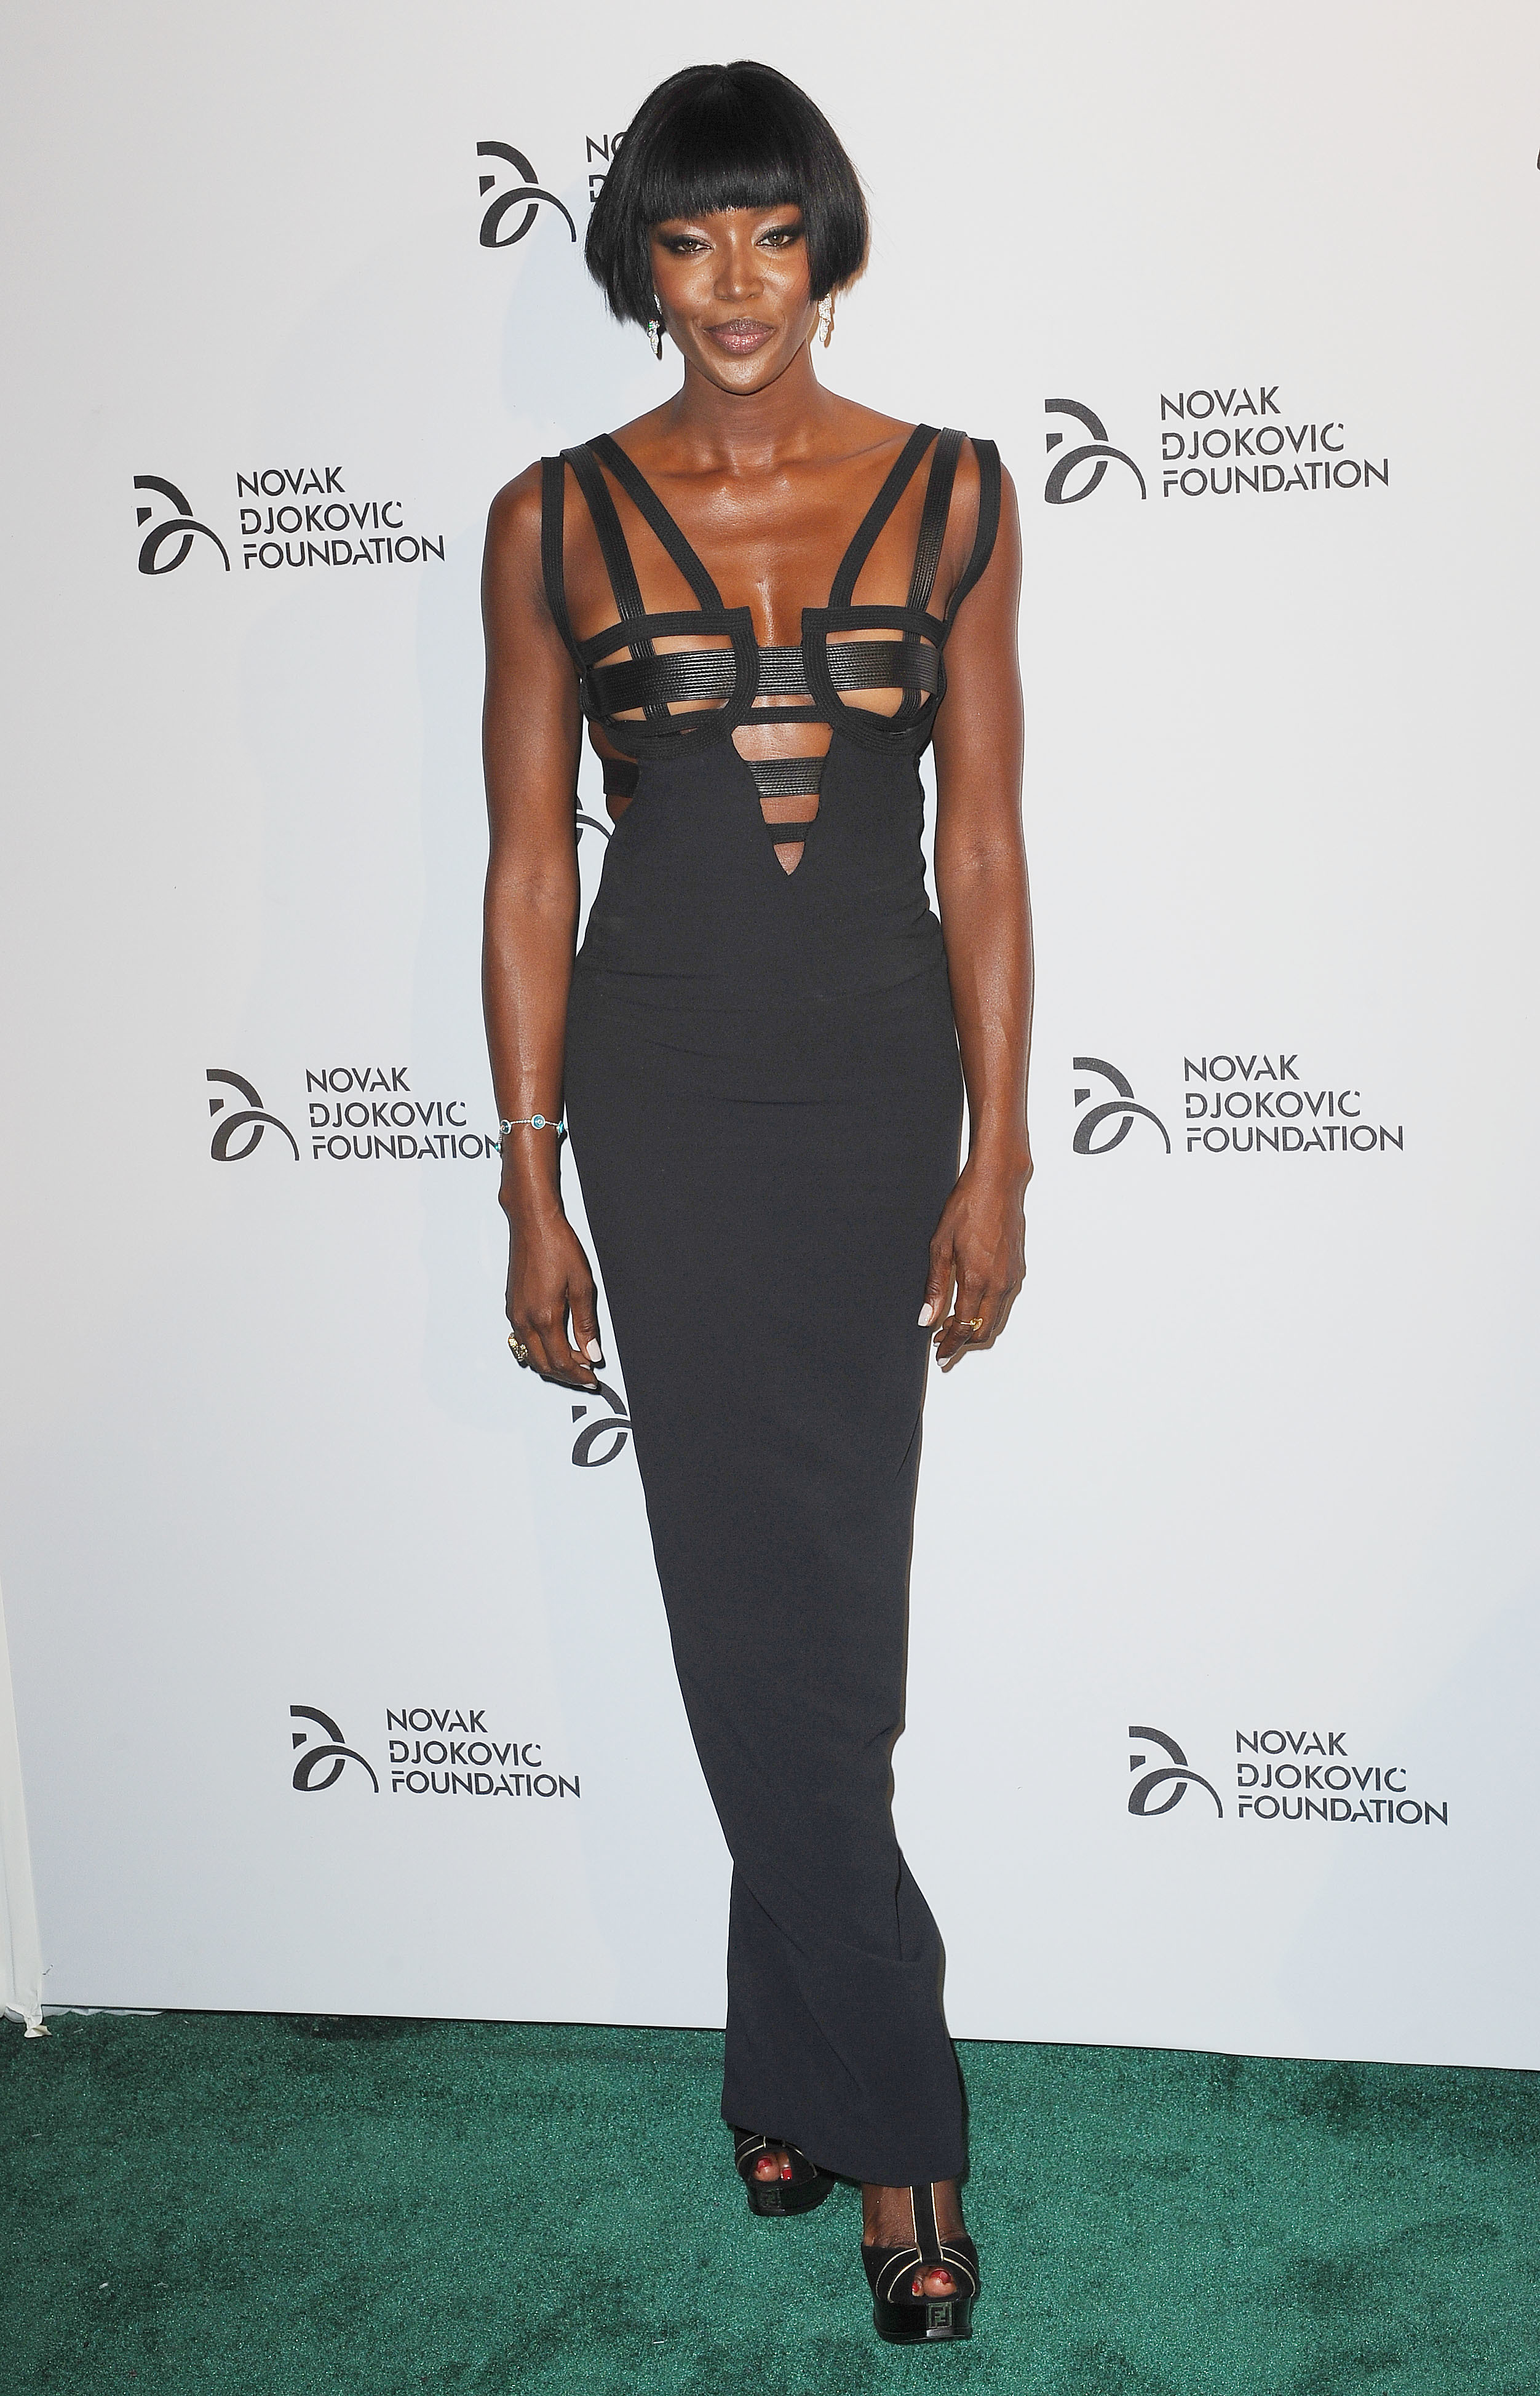 naomi campbell fashion industry acts of racism